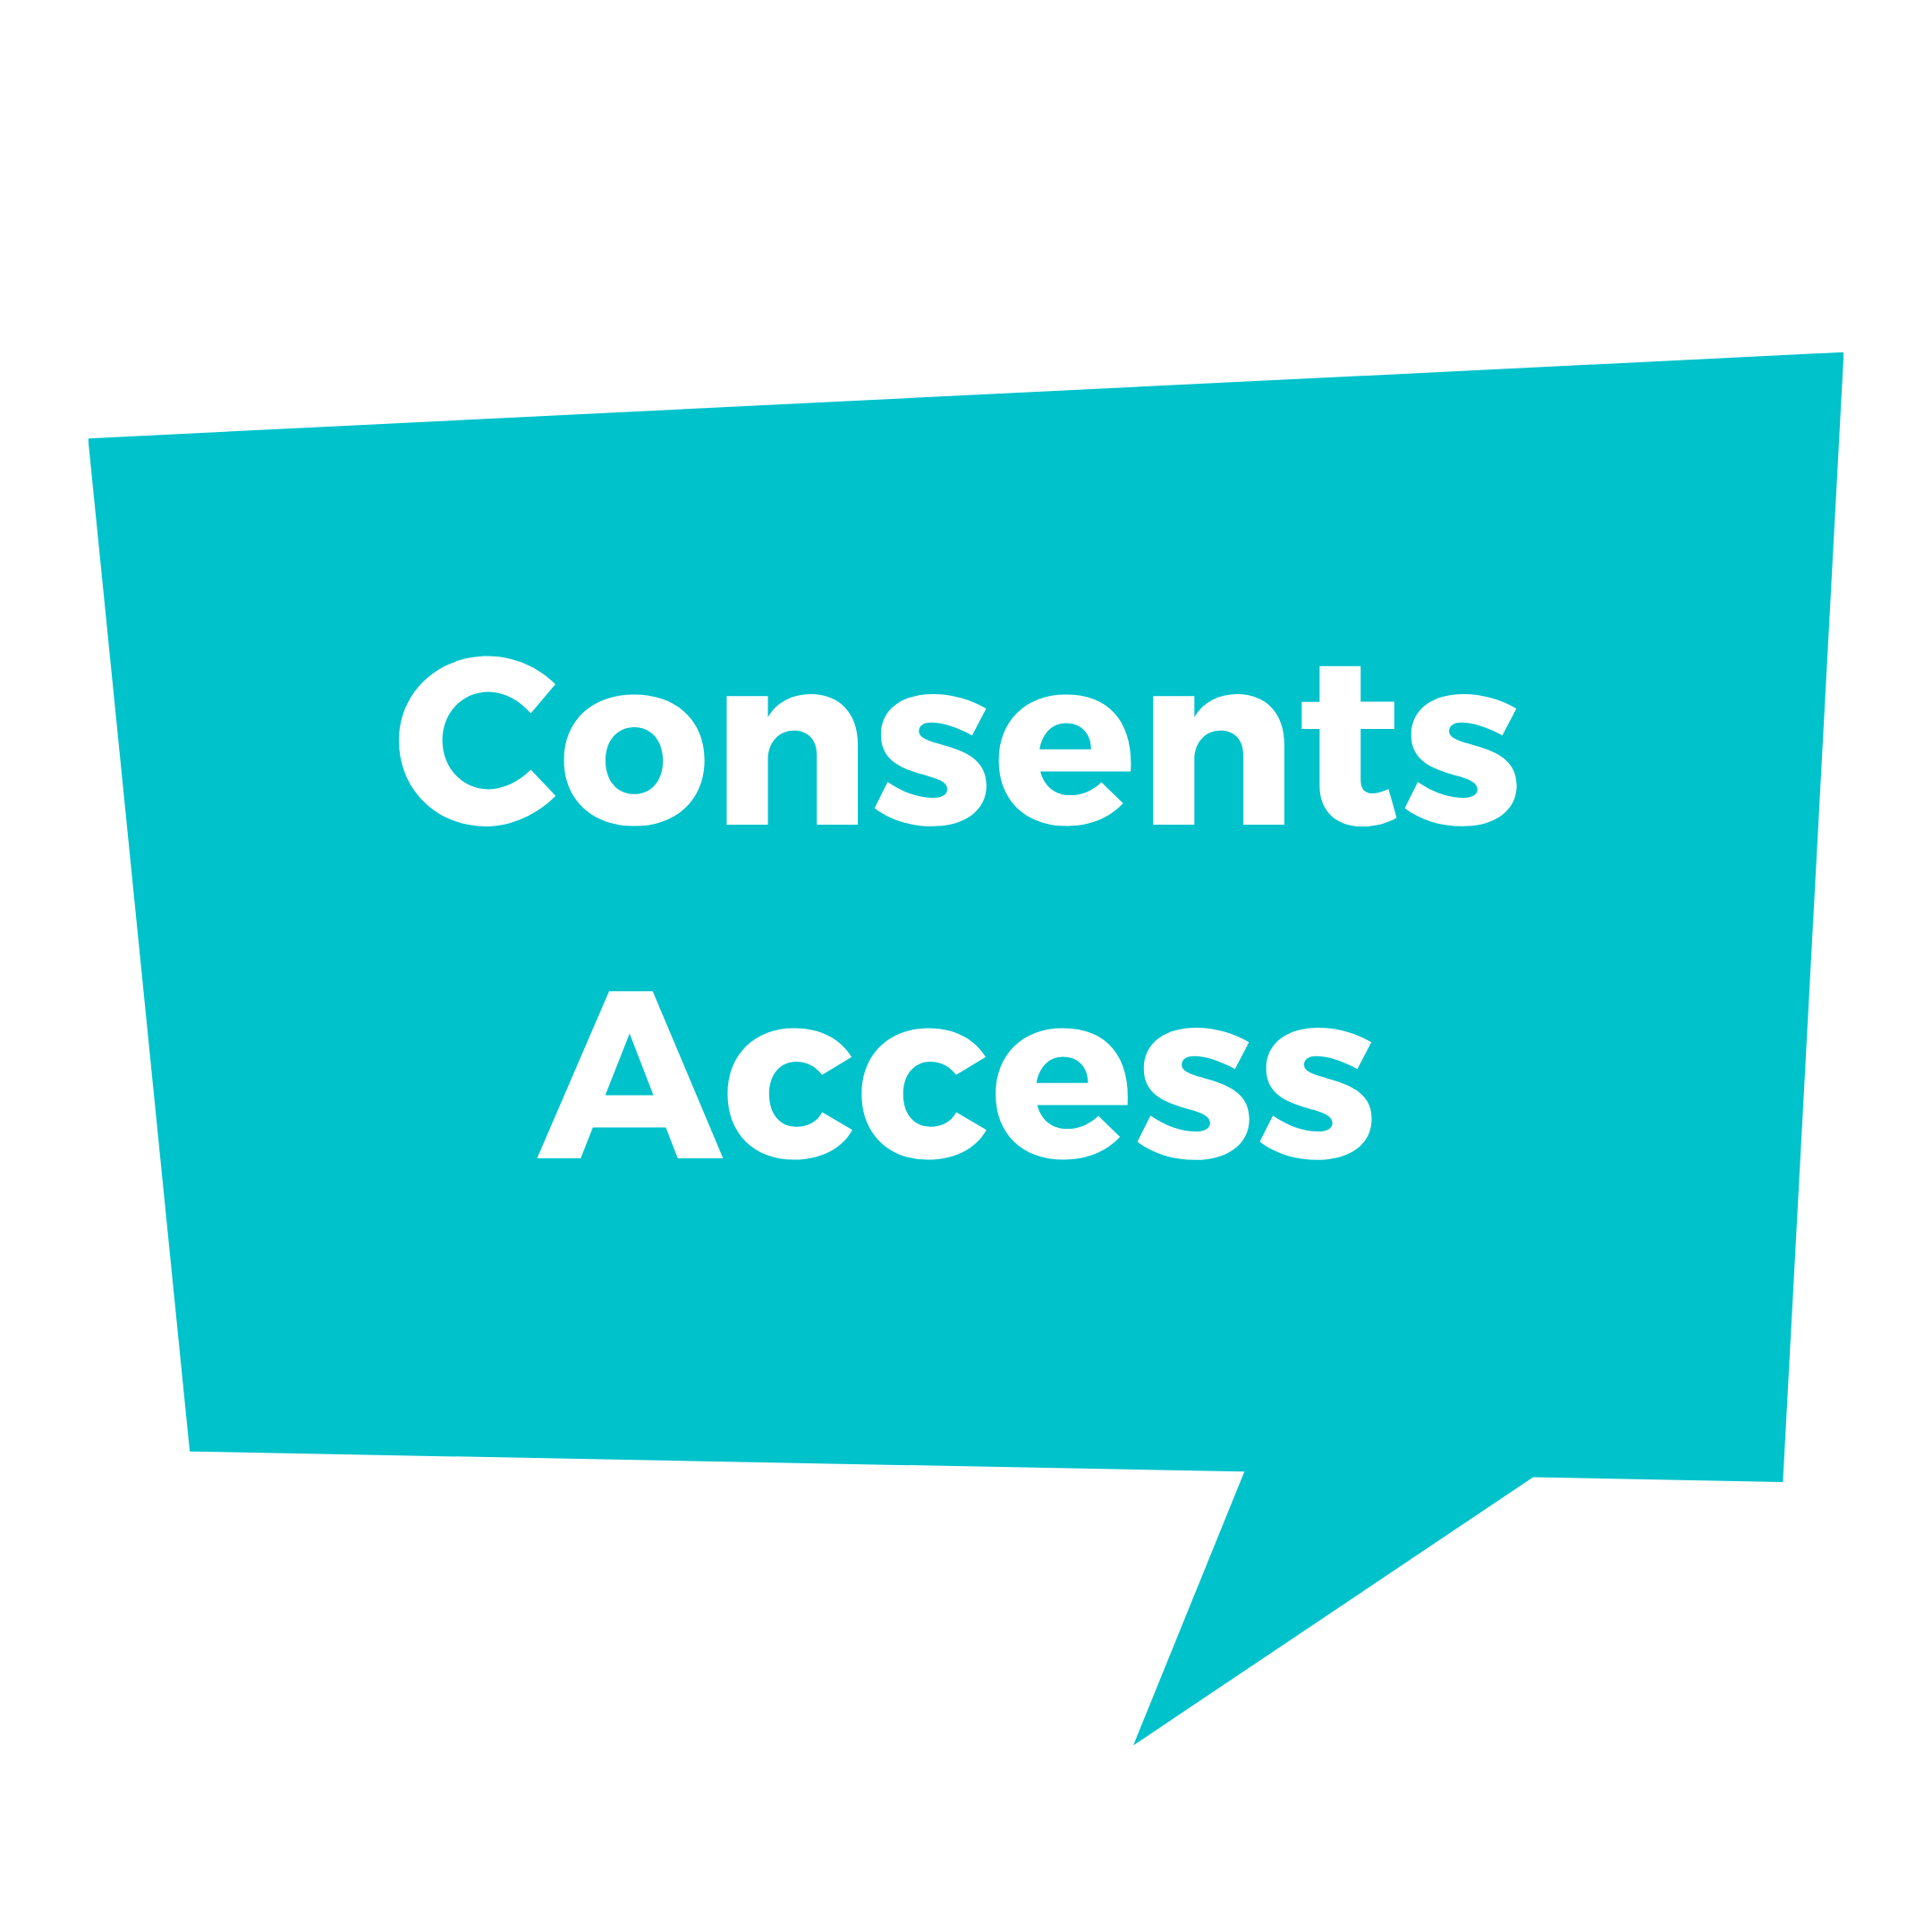 Consents Access